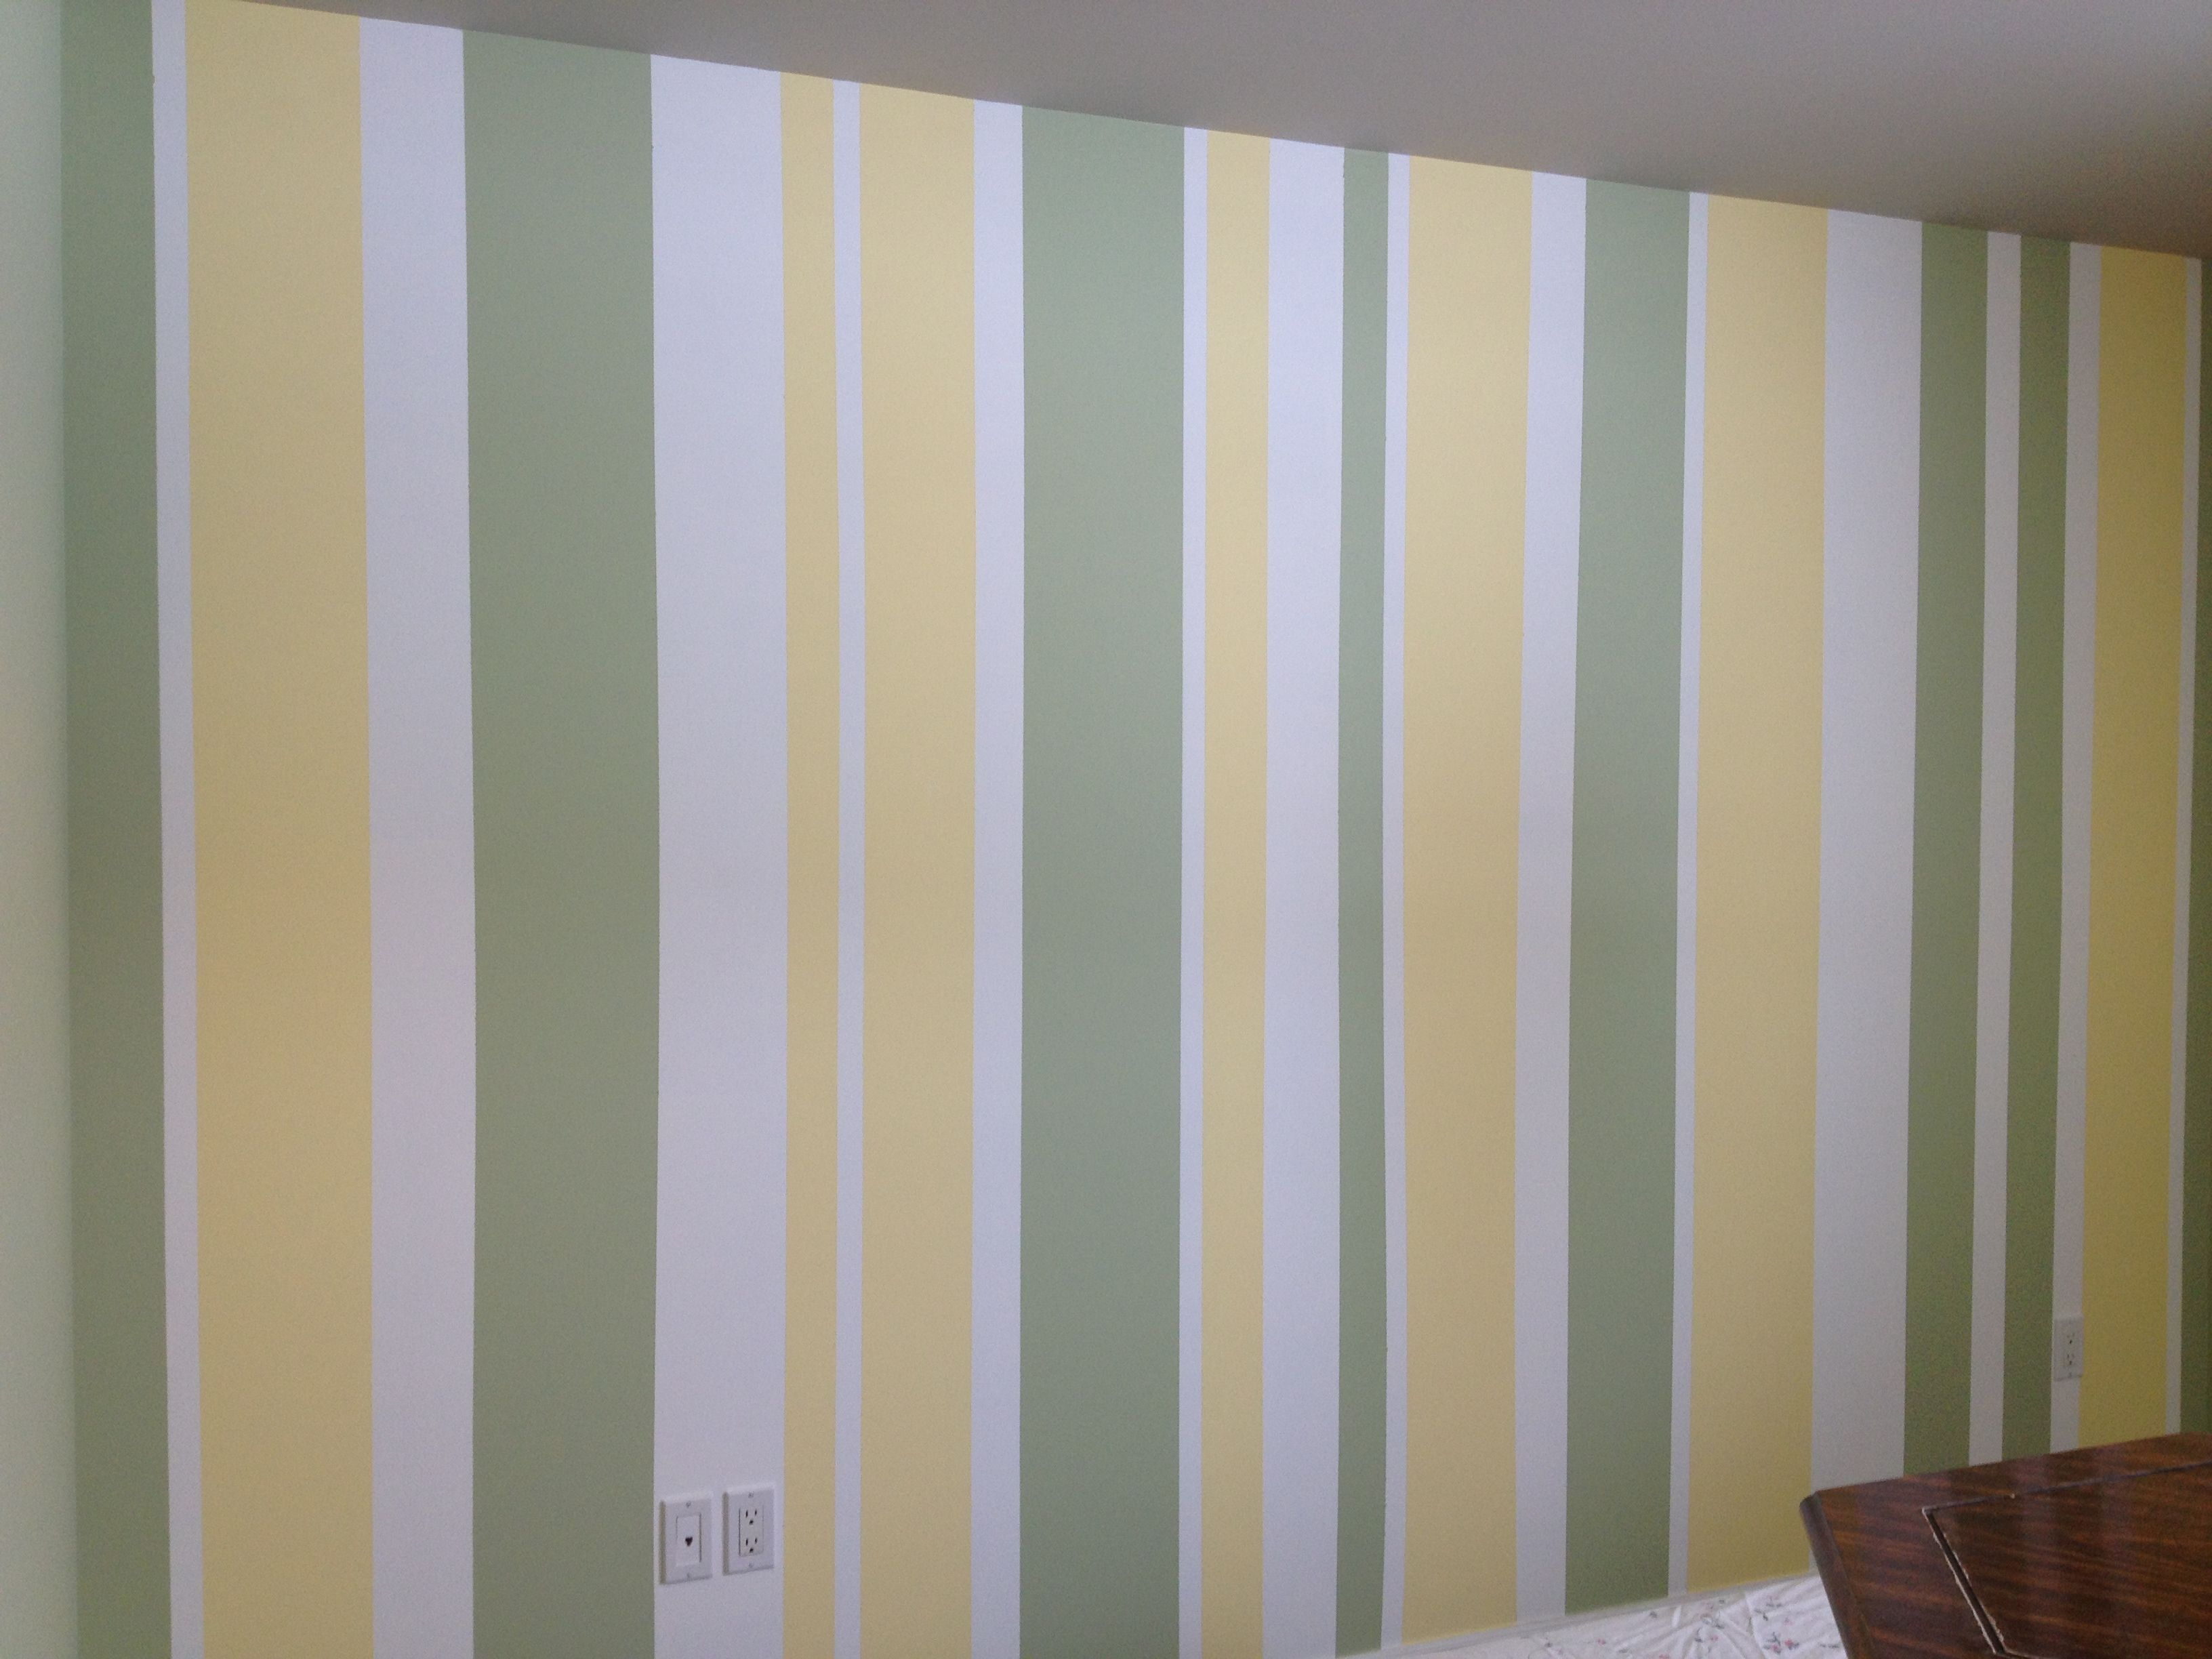 Is This Too Much Going On In The Nursery Striped Walls Nursery